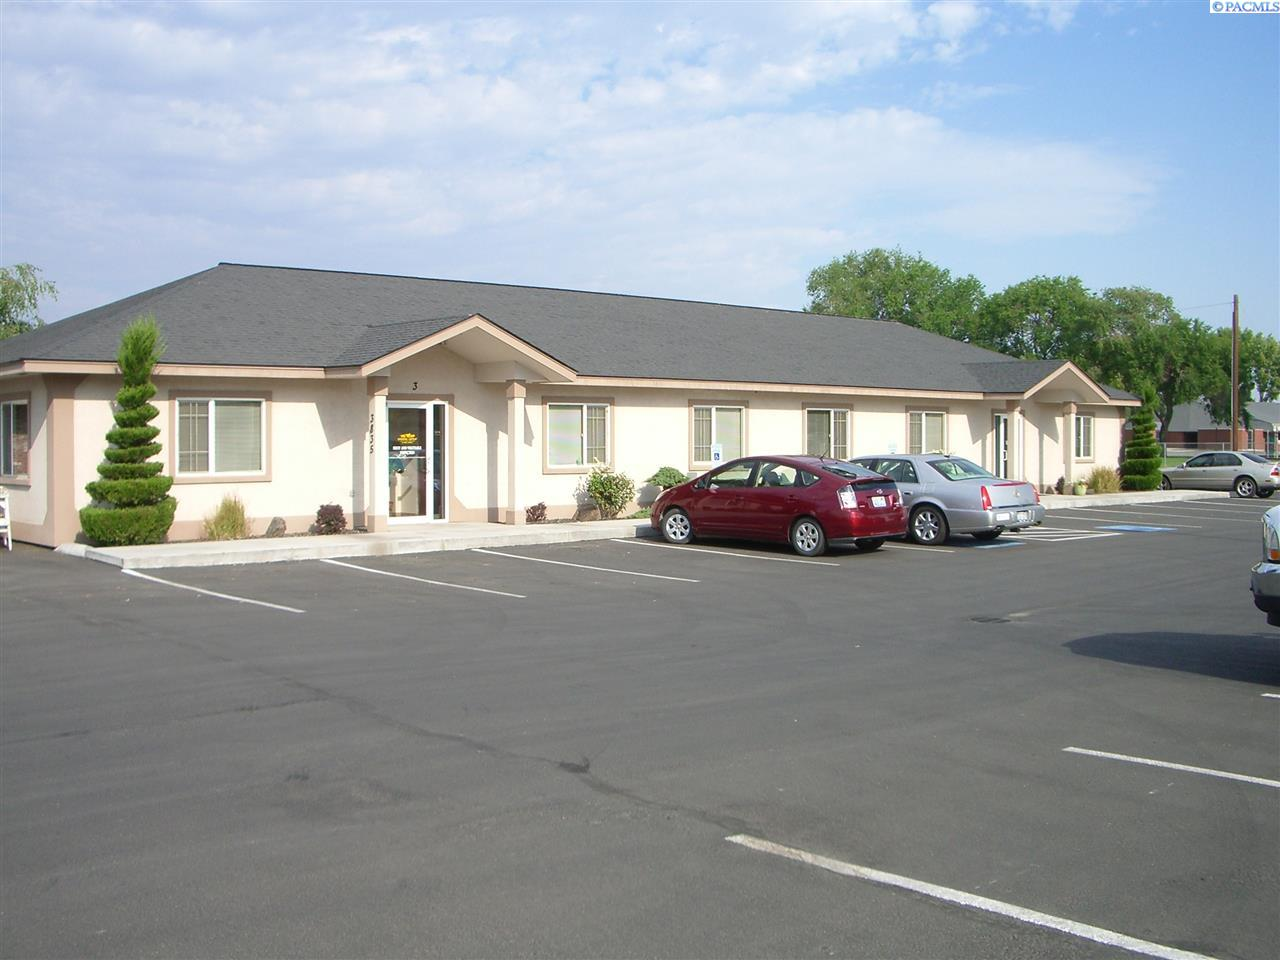 Offices for Sale at 3835 W Court St - Ste B/C Pasco, Washington 99301 United States